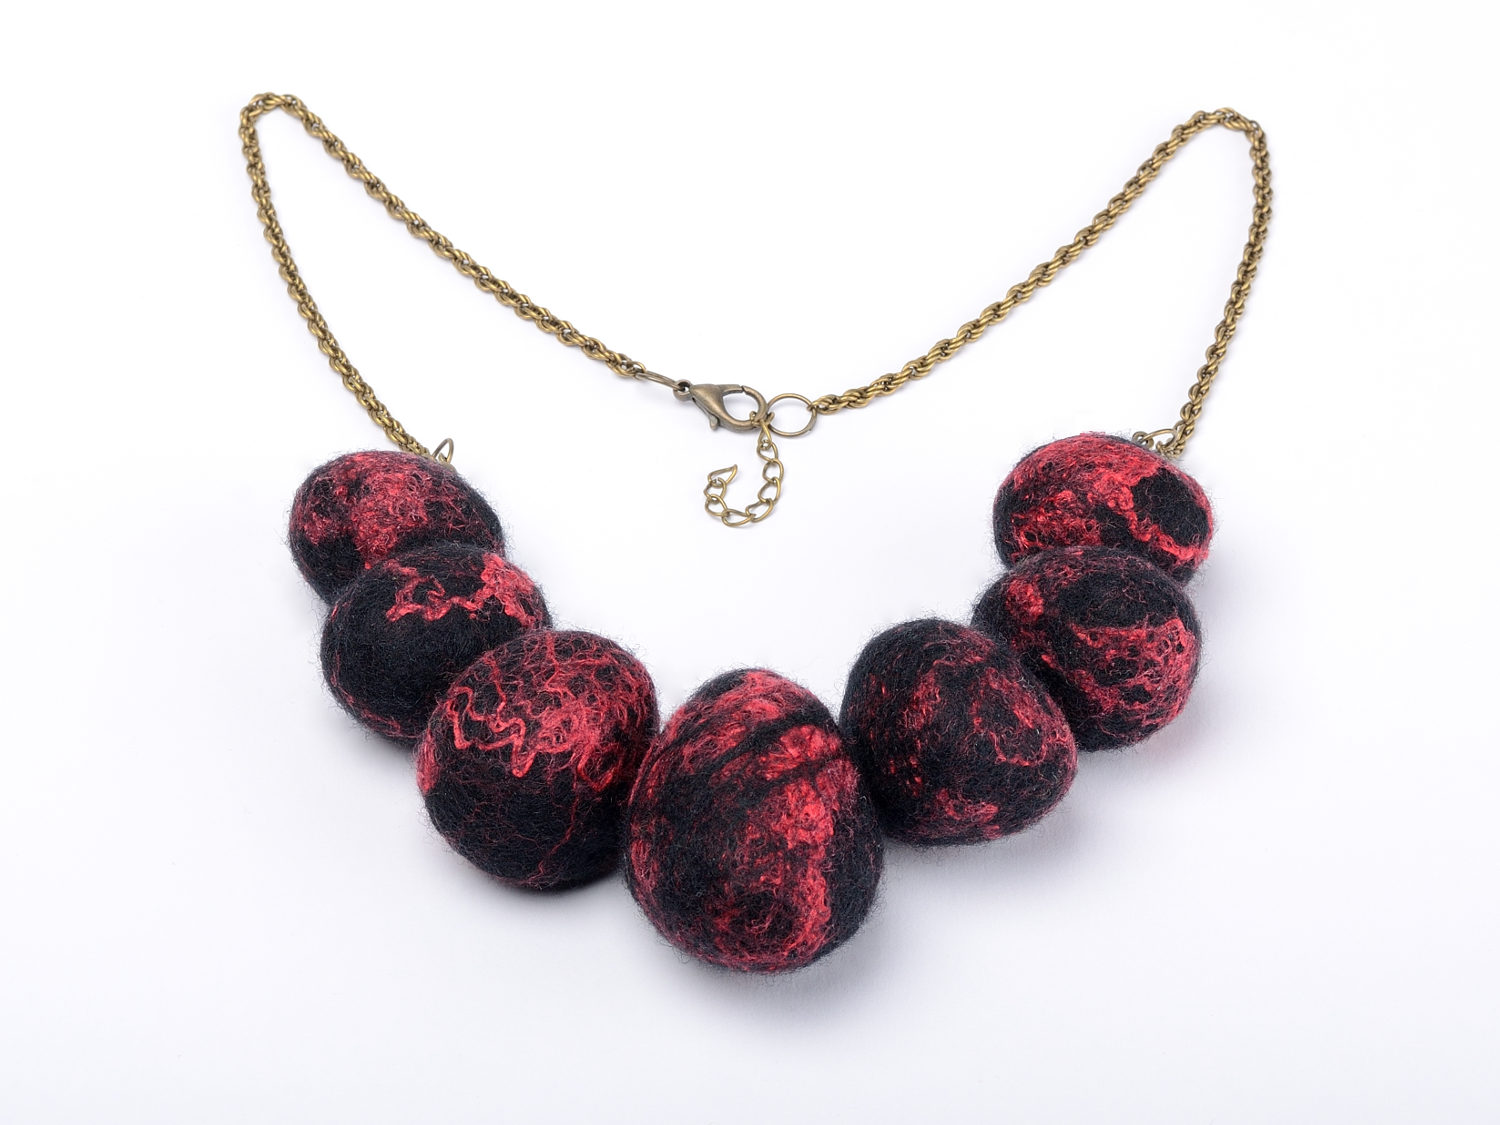 Felt Stone Necklace In Zen Style Made Of Natural Wool Stones